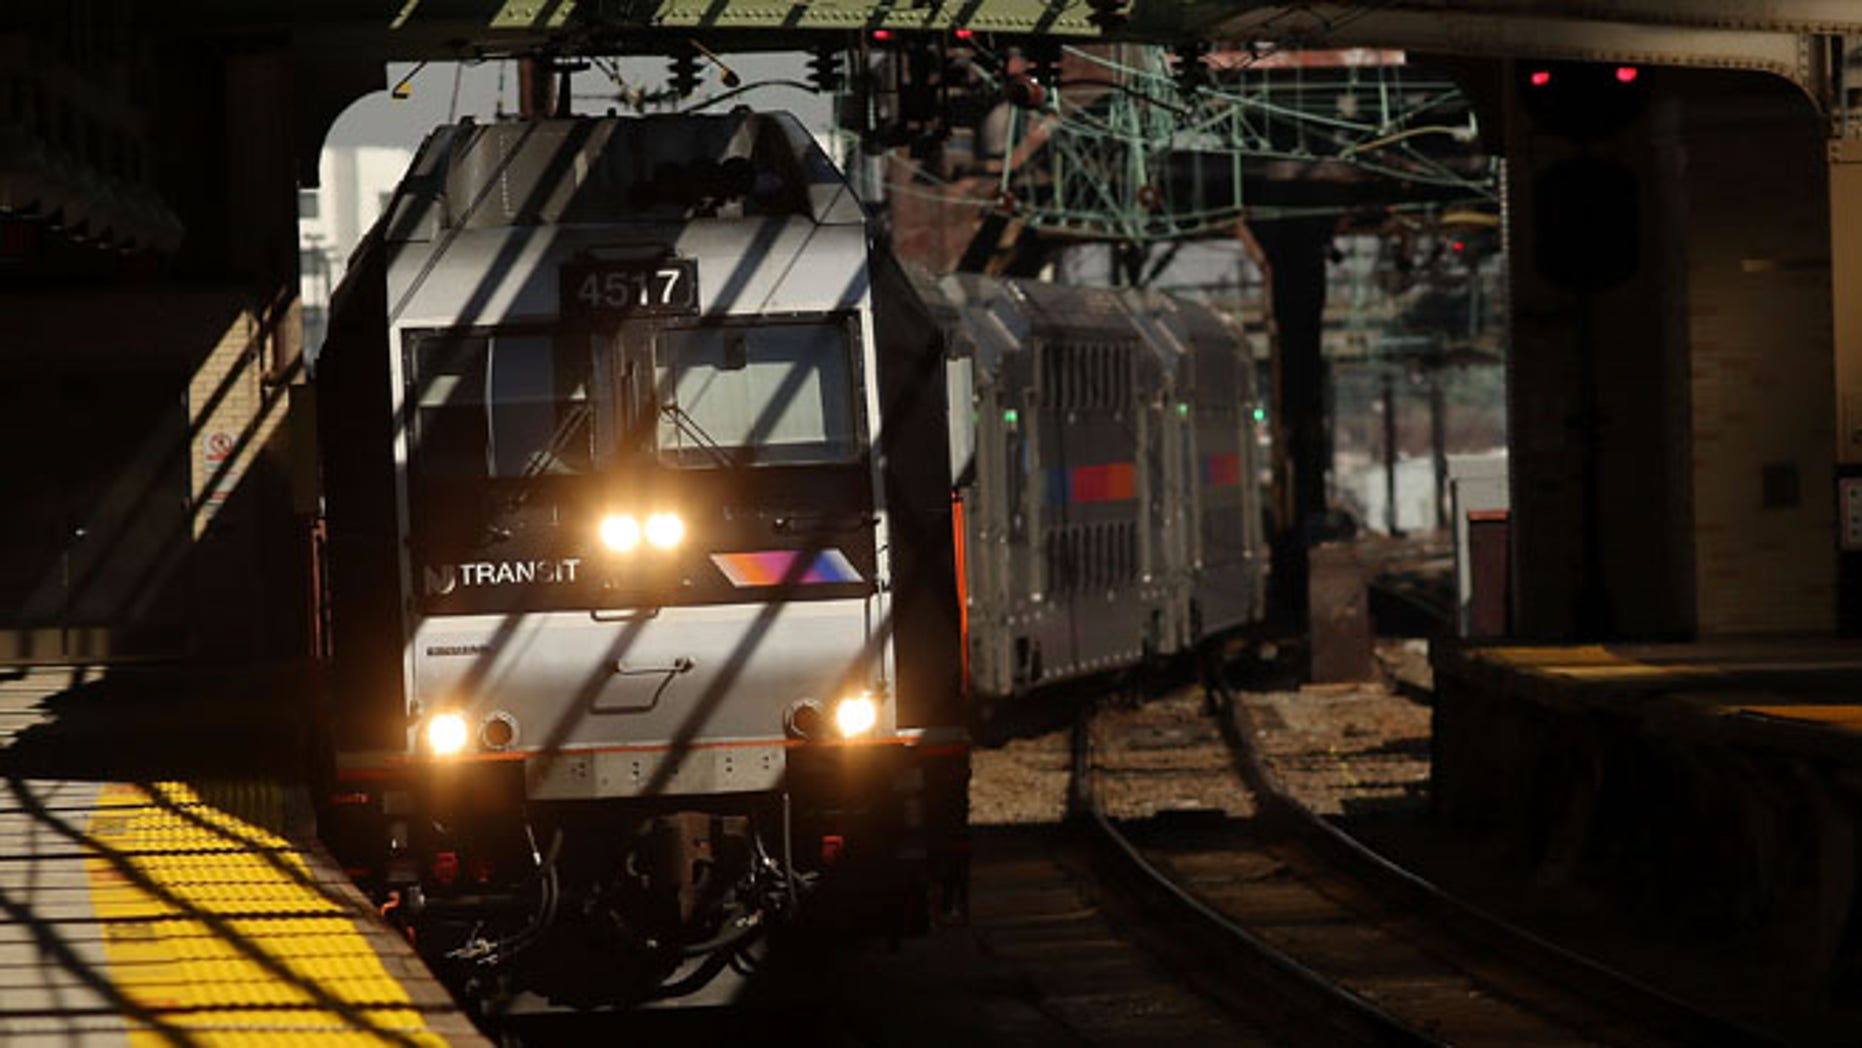 NEWARK, NJ - MARCH 09: A NJ Transit train pulls into a station as a strike looms on one of the nations most popular commuter lines on March 9, 2016 in Newark, New Jersey. The employee unions, which have been without a contract since 2011, are threatening to strike , will resume talks with management on Thursday while a strike could take place as early as Monday morning. (Photo by Spencer Platt/Getty Images)